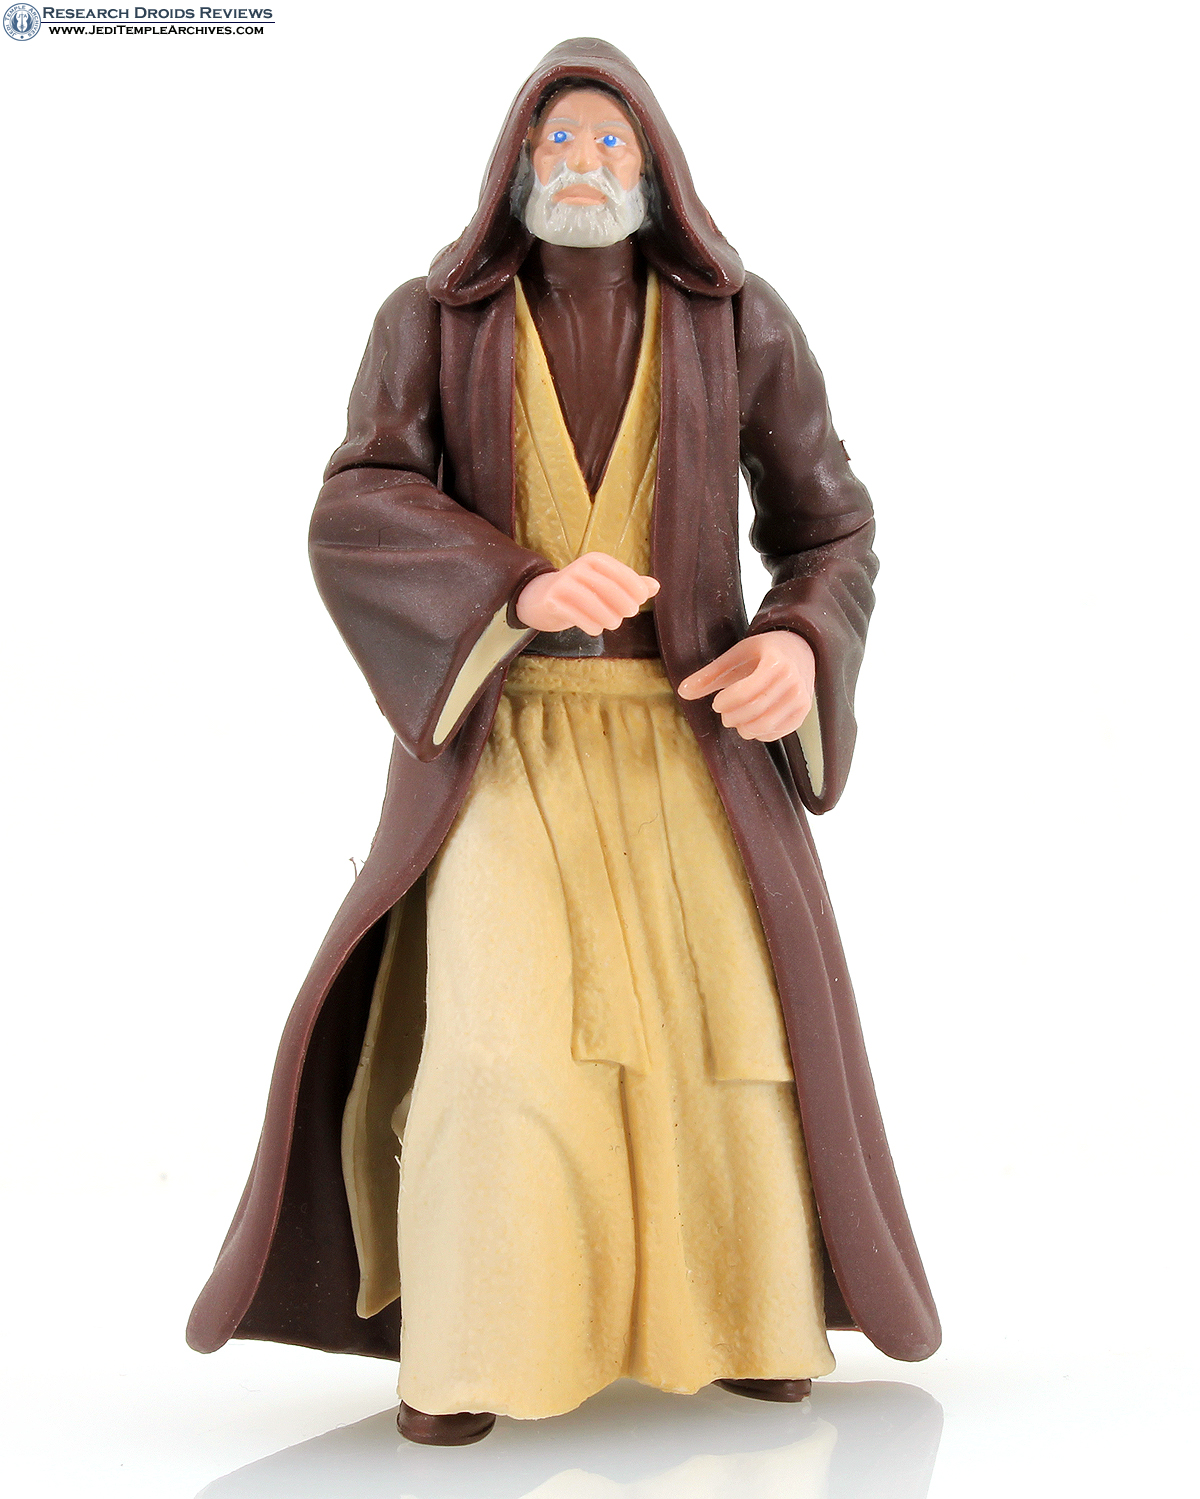 Ben (Obi-Wan) Kenobi (with Lightsaber)